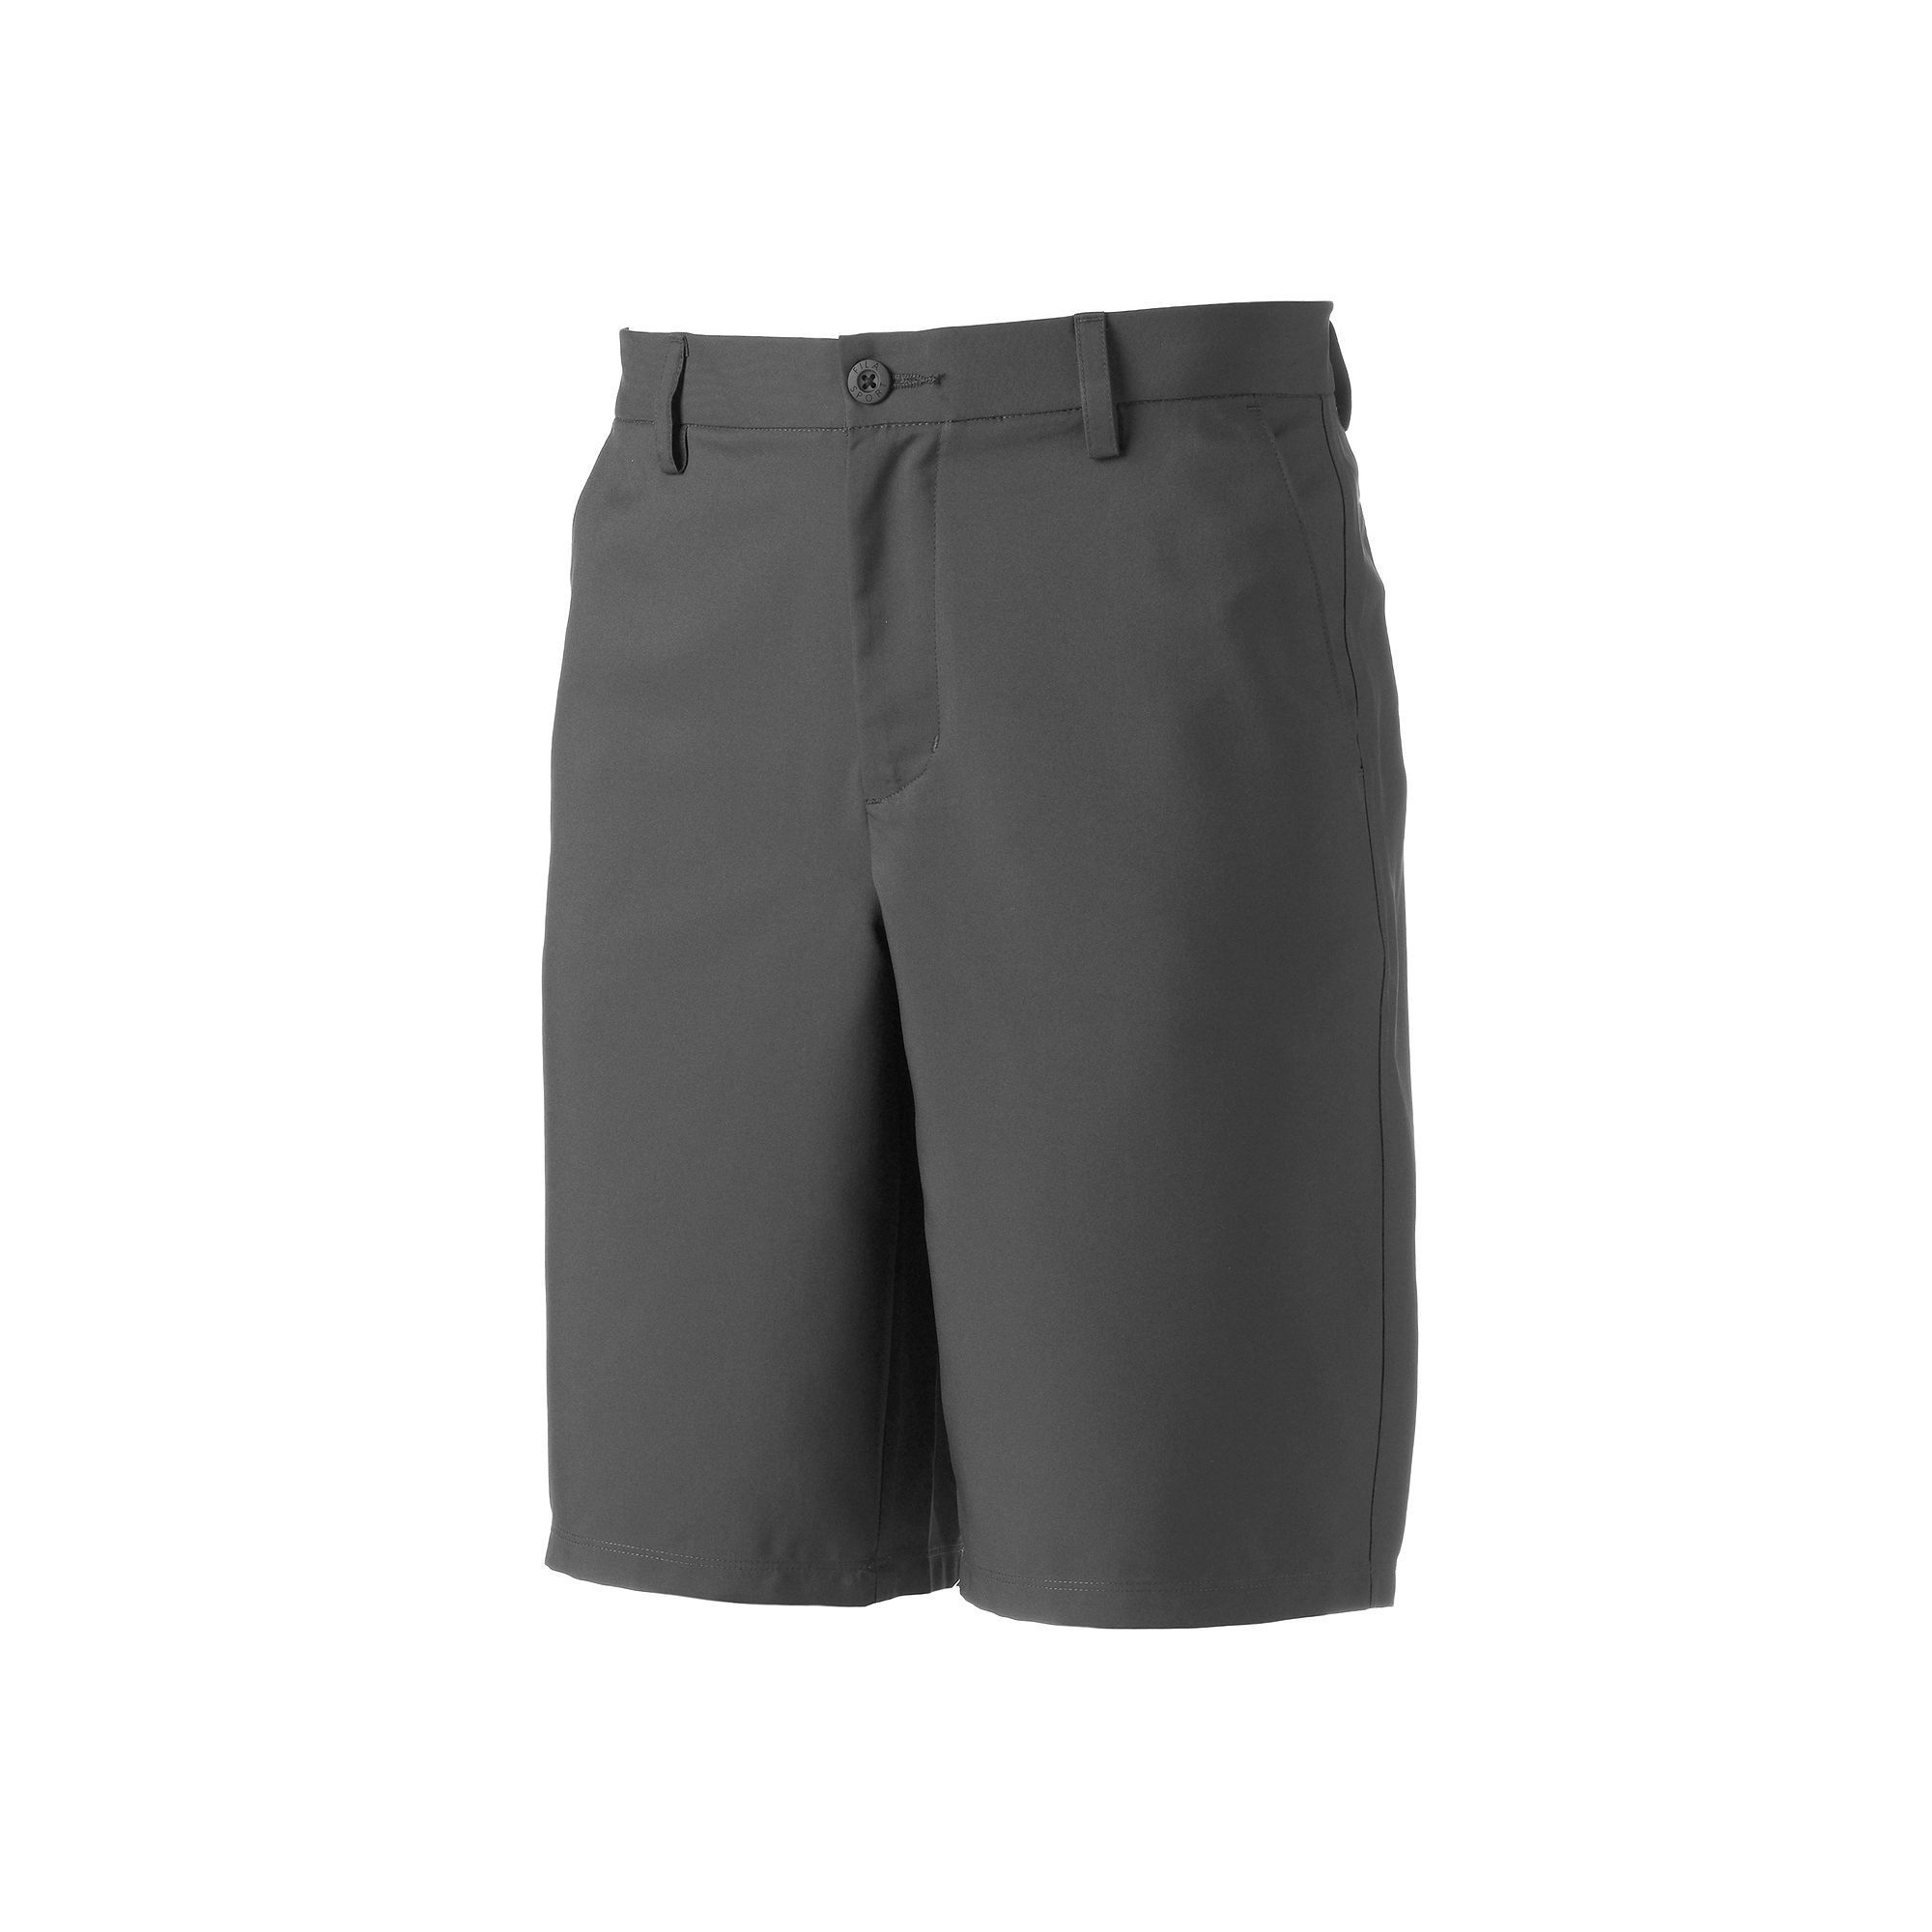 8ff2b6fb4312 Big & Tall FILA Sport Golf® Driver Stretch Performance Golf Shorts, Men's,  Size: 46, Dark Grey